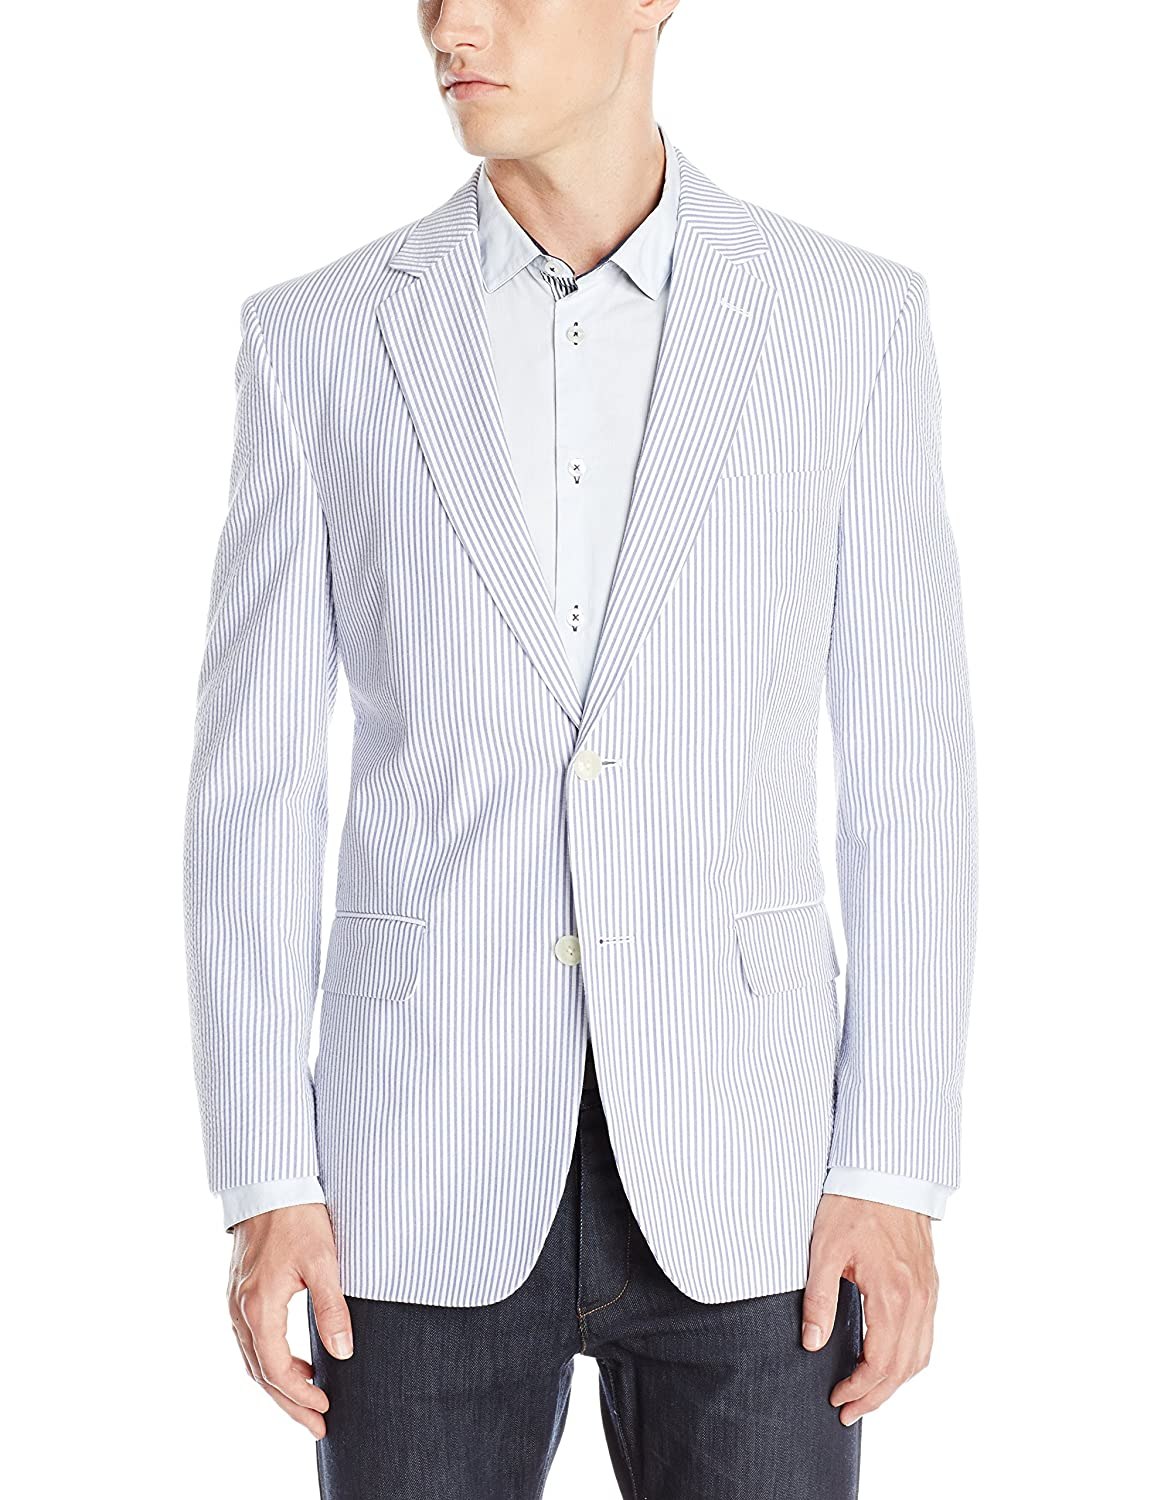 Palm Beach Men's Brock Navy-Seersucker Suit Separate Jacket Palm Beach Men's Tailored